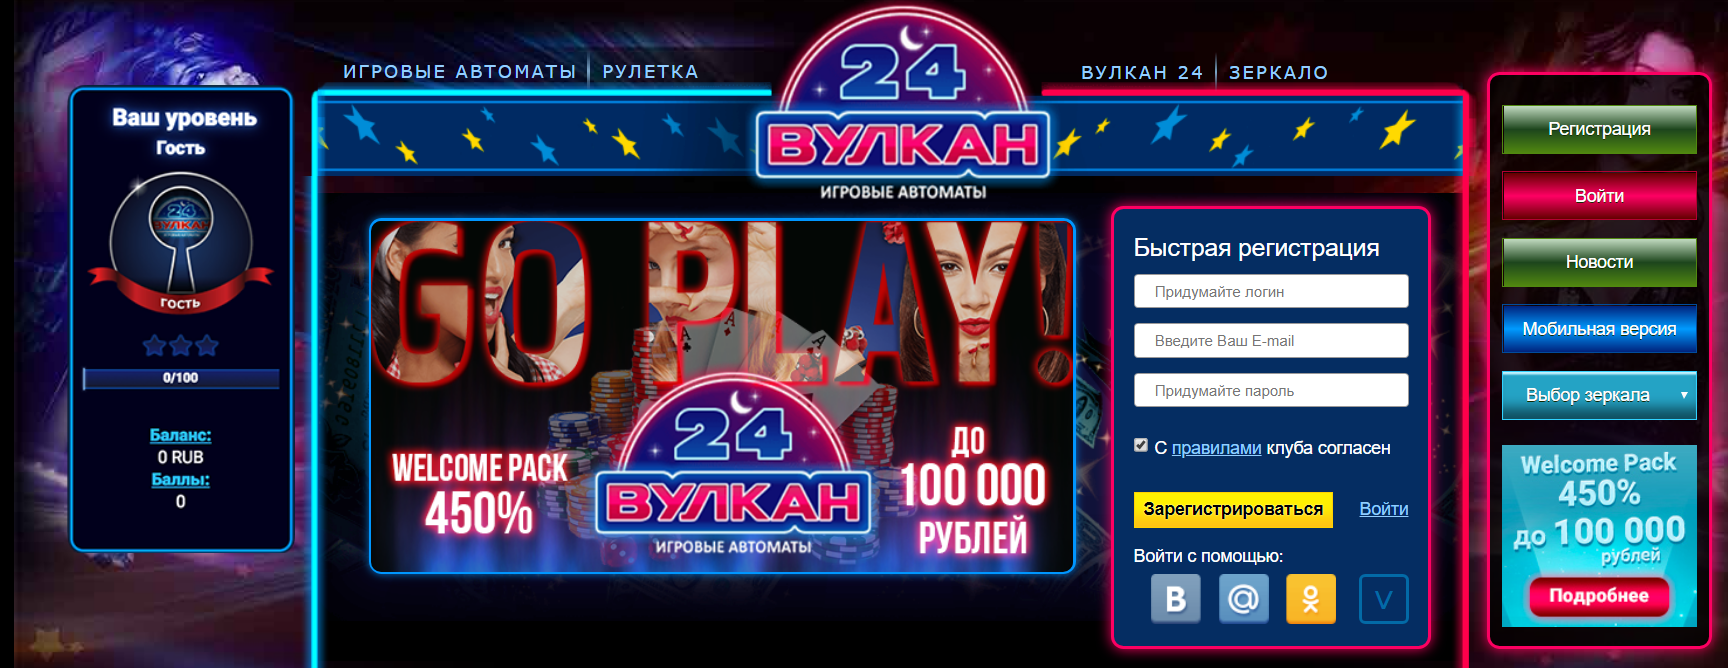 best casinoz info обзор казино вулкан 24